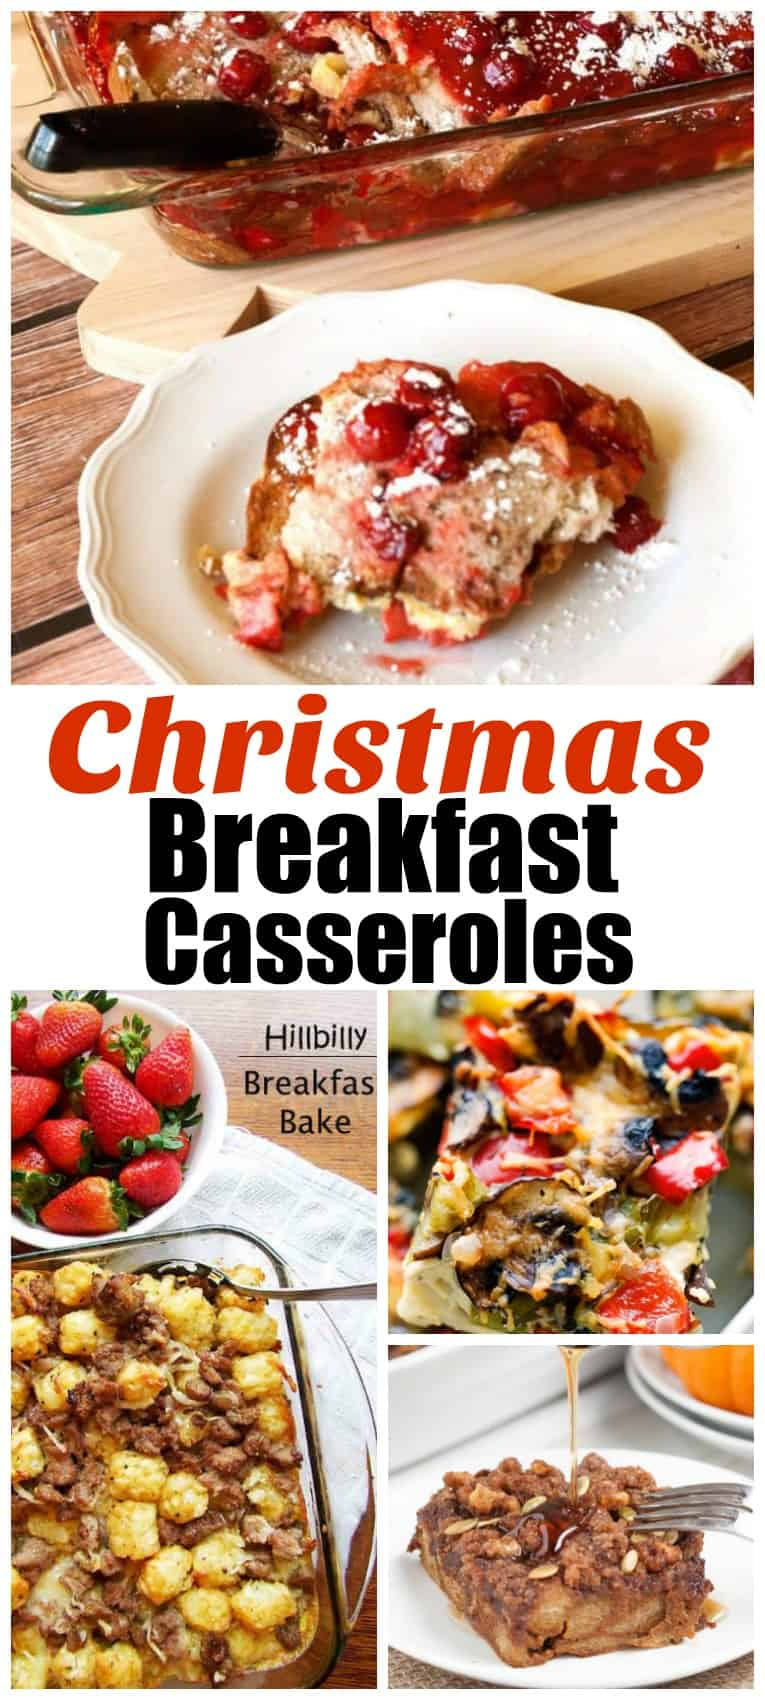 Best Christmas Breakfast Casserole Recipes